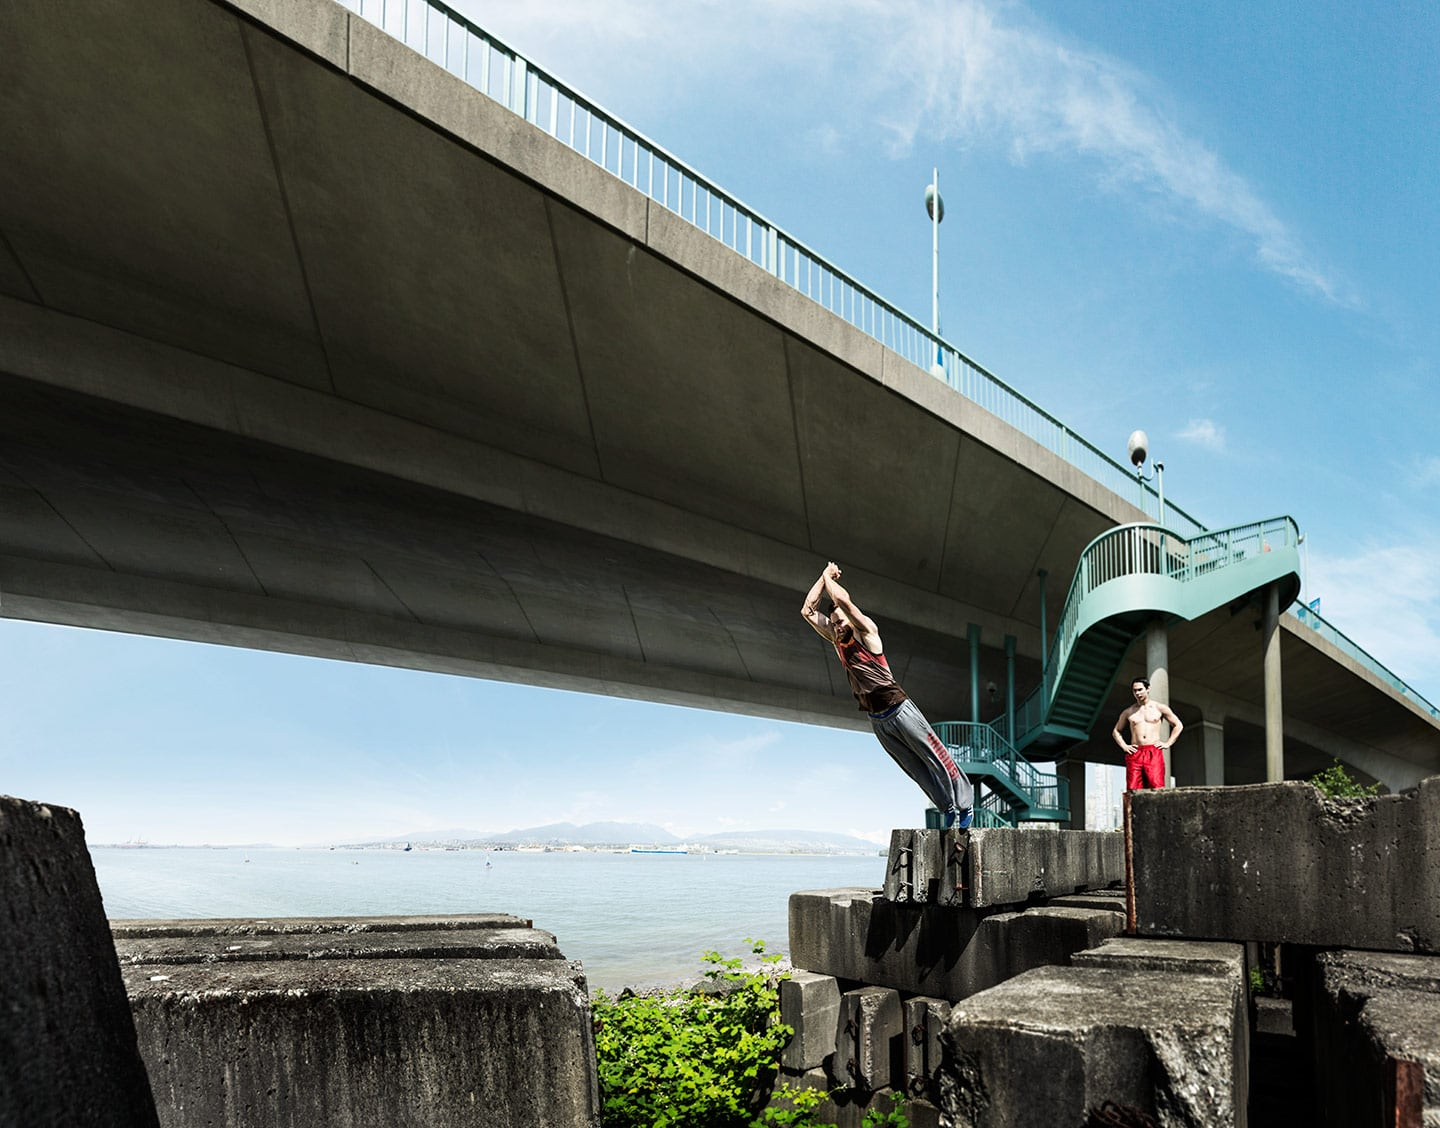 Two Athletic Men Parkour Wall Jump Gap Under Bridge